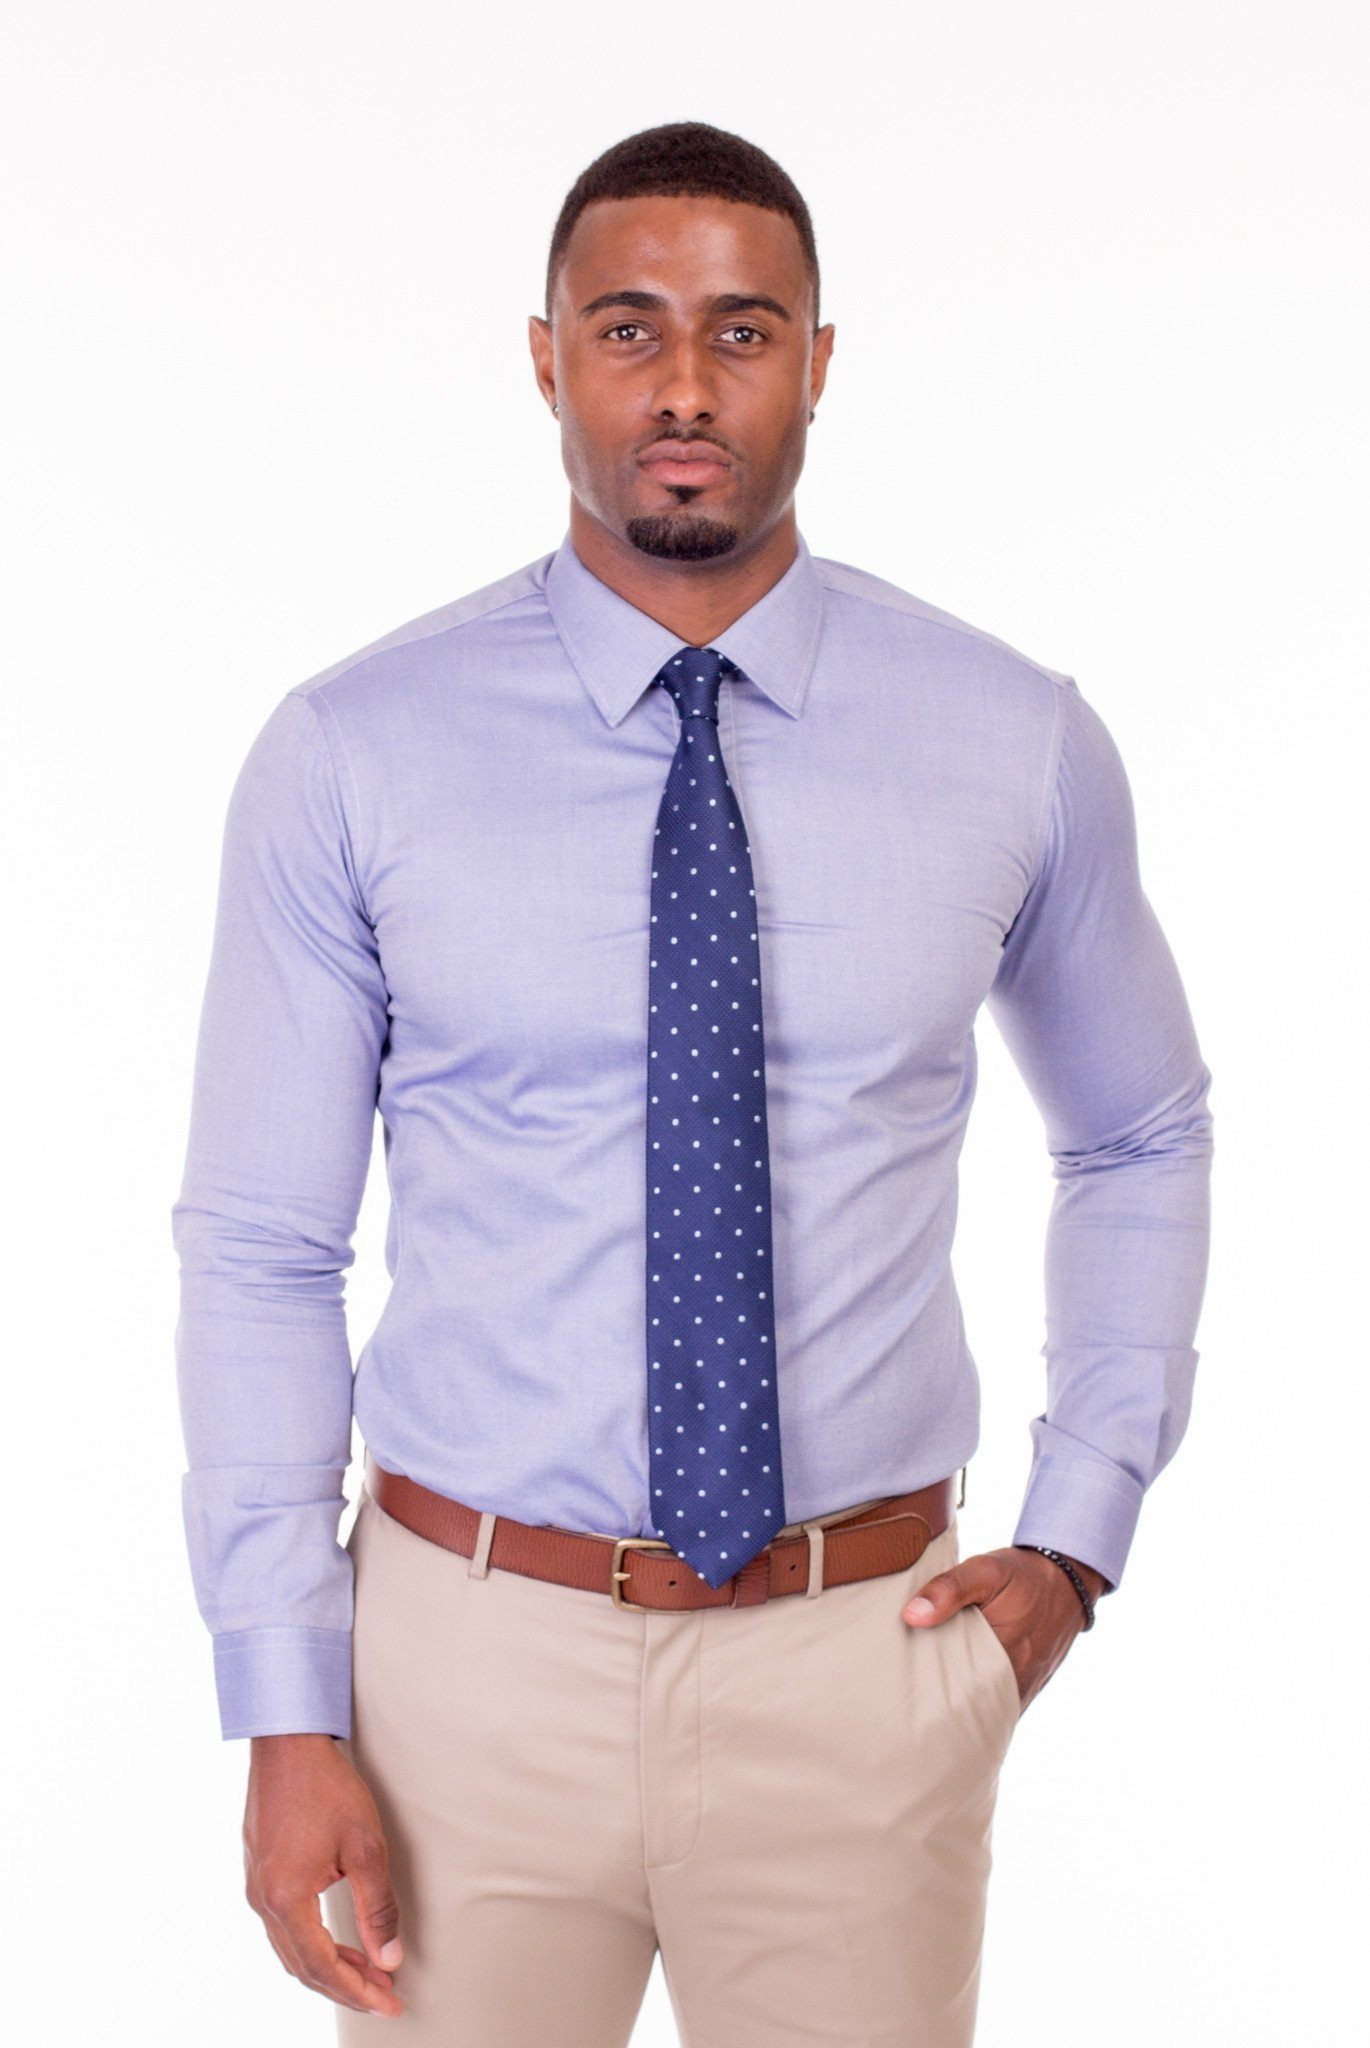 SLICK BLUE DRESS SHIRT | Poor Little Rich Boy Clothing